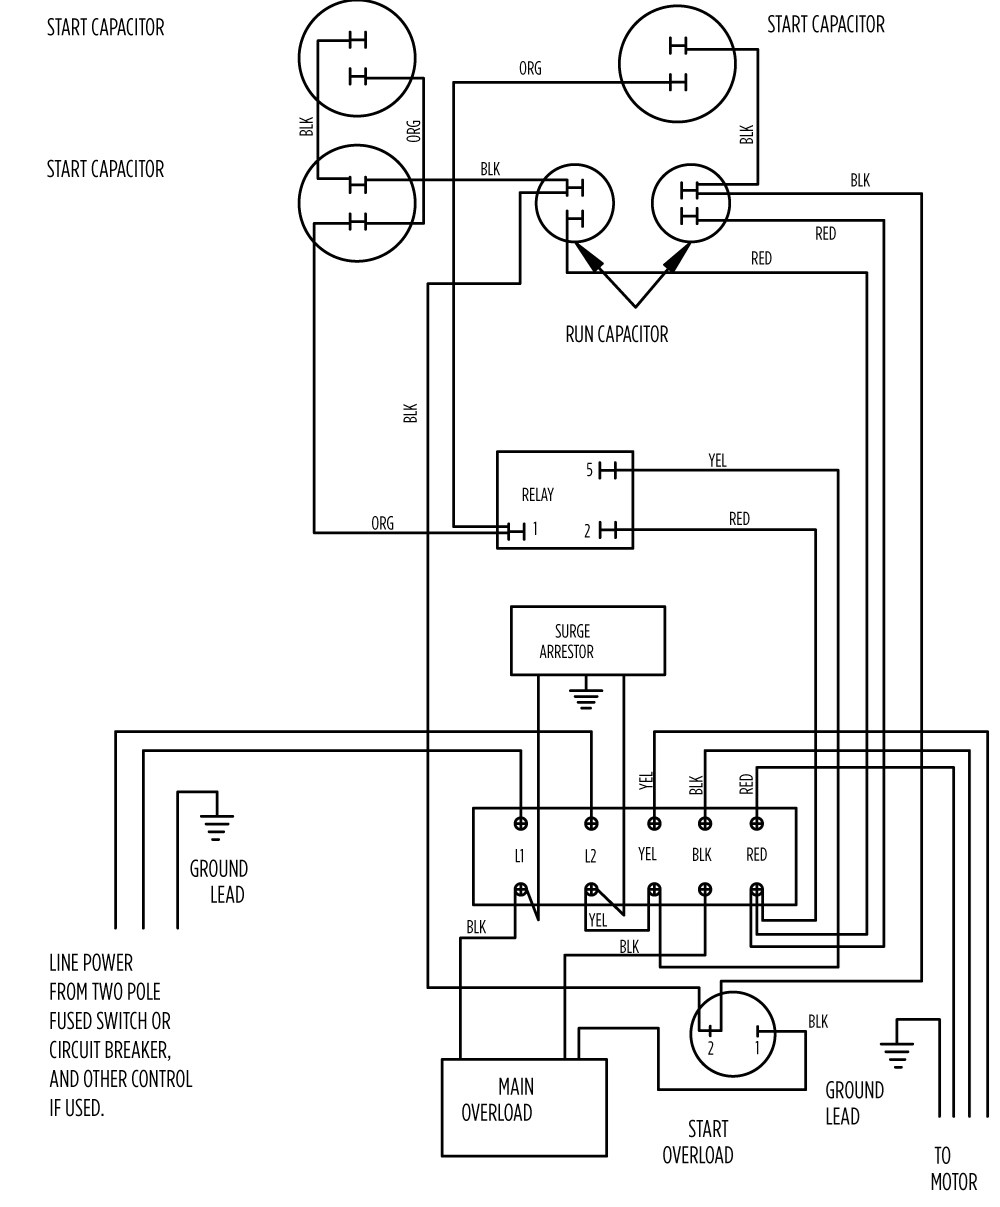 10 hp standard 282 202 9210 or 282 202 9230_aim gallery?format=jpg&quality=80 aim manual page 57 single phase motors and controls motor electric motor wiring diagram at webbmarketing.co